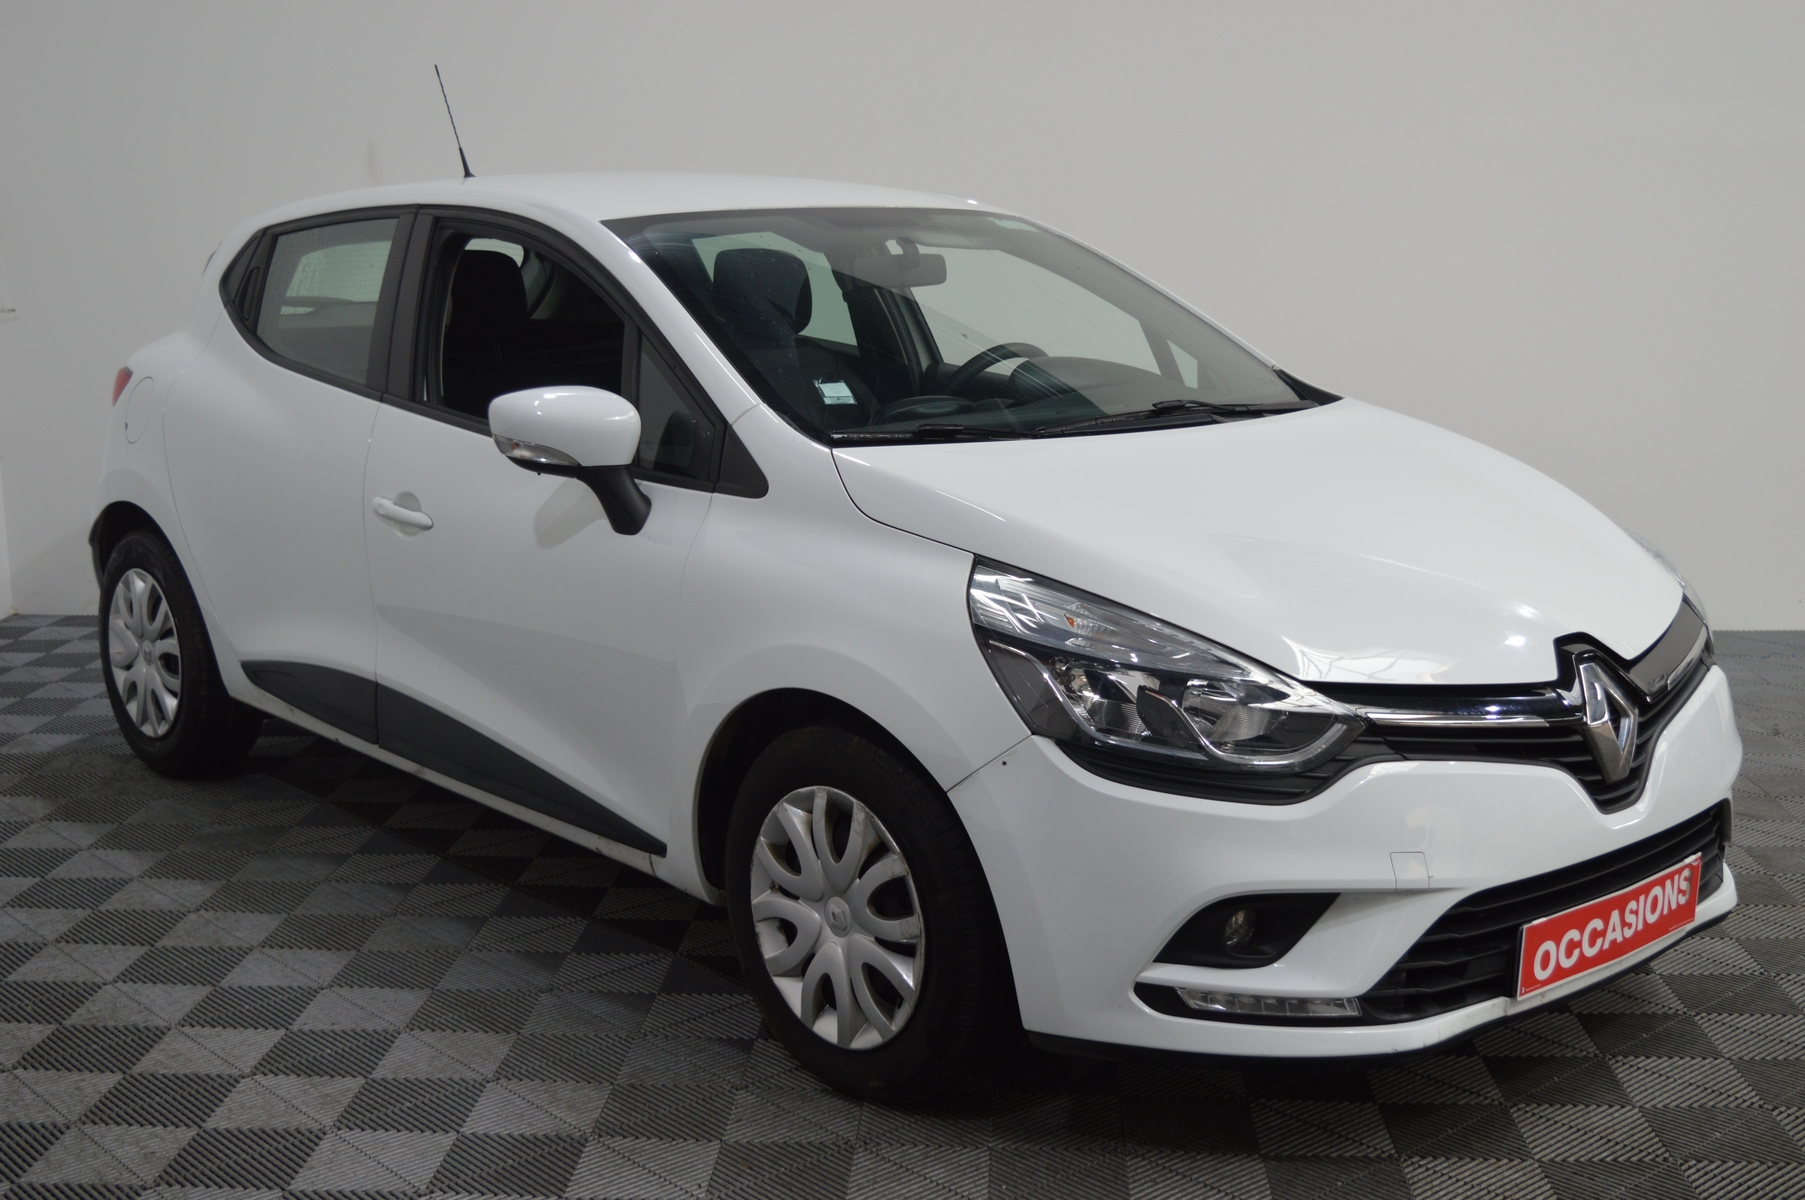 RENAULT CLIO IV SOCIETE 2018 à 7400 € - Photo n°2